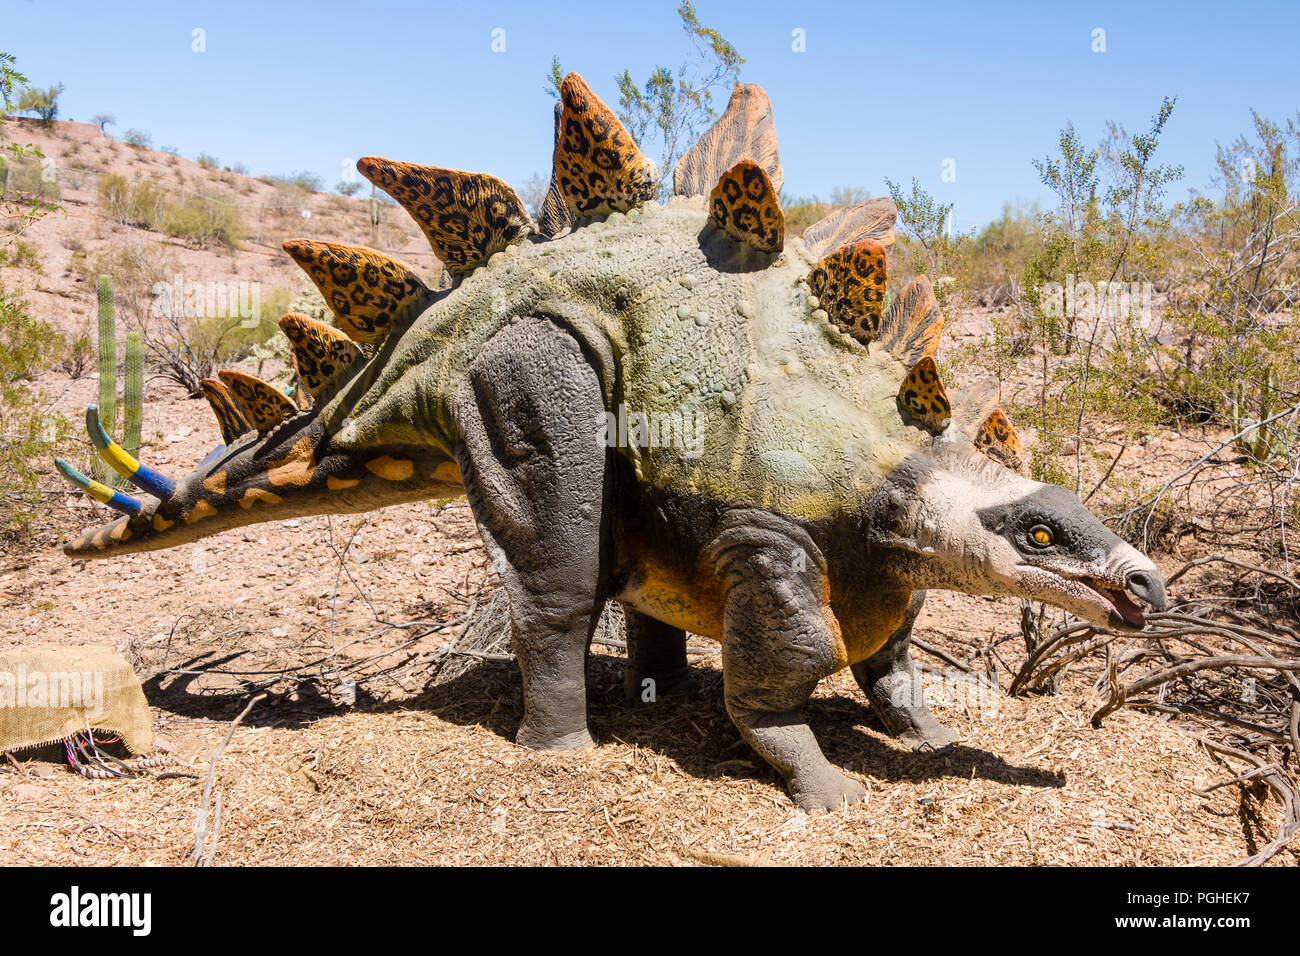 Stegosaurus - Dinosaurs in the Desert at the Phoenix Zoo Stock Photo